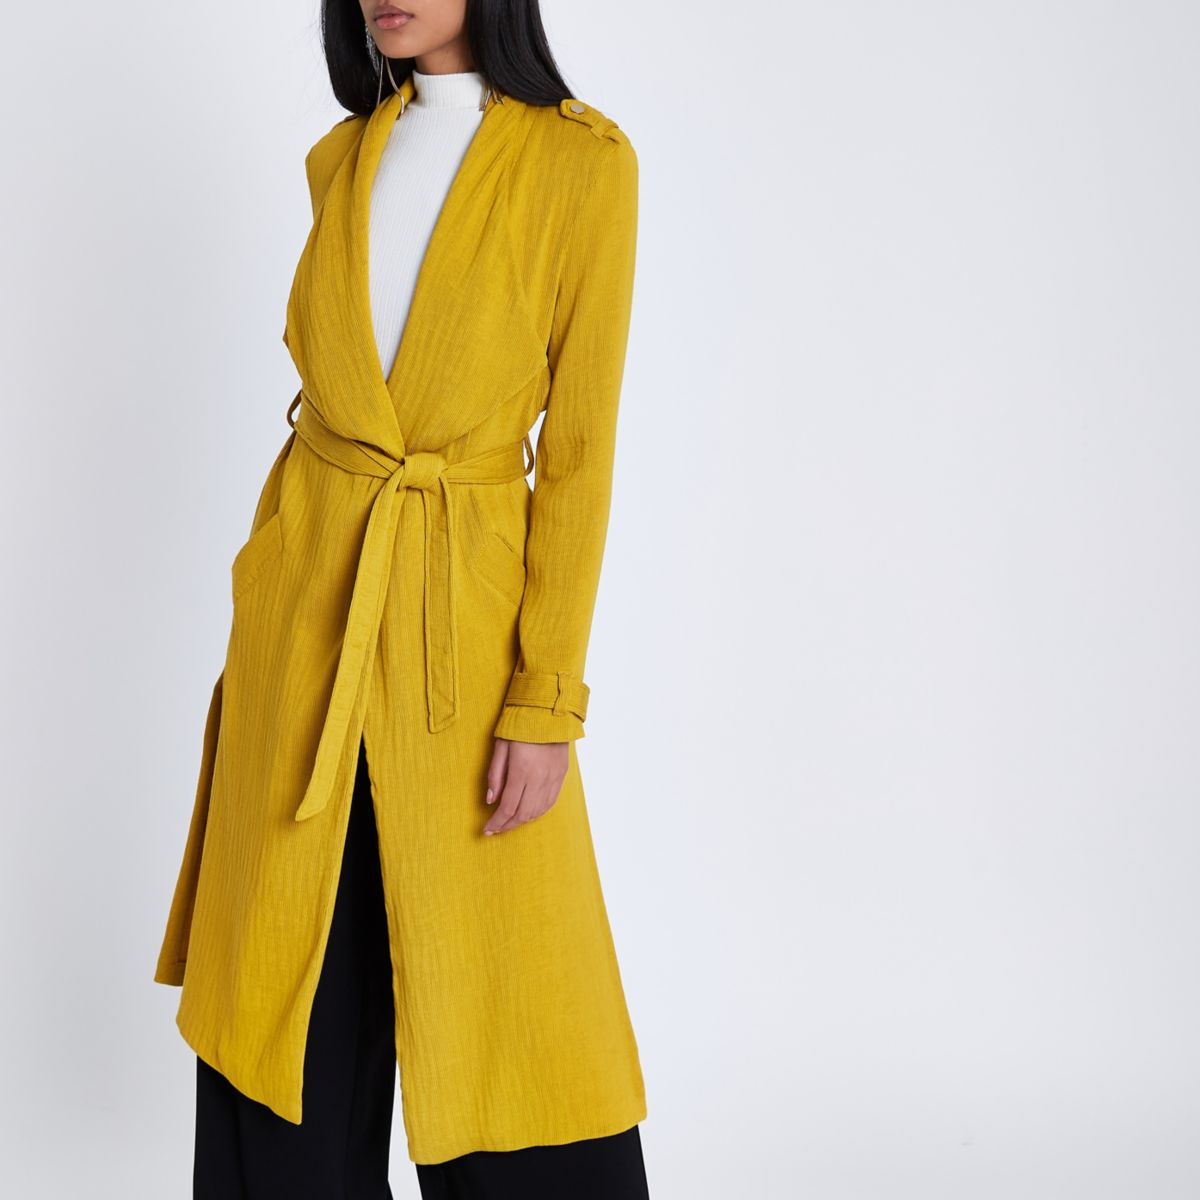 Mustard yellow belted duster trench coat